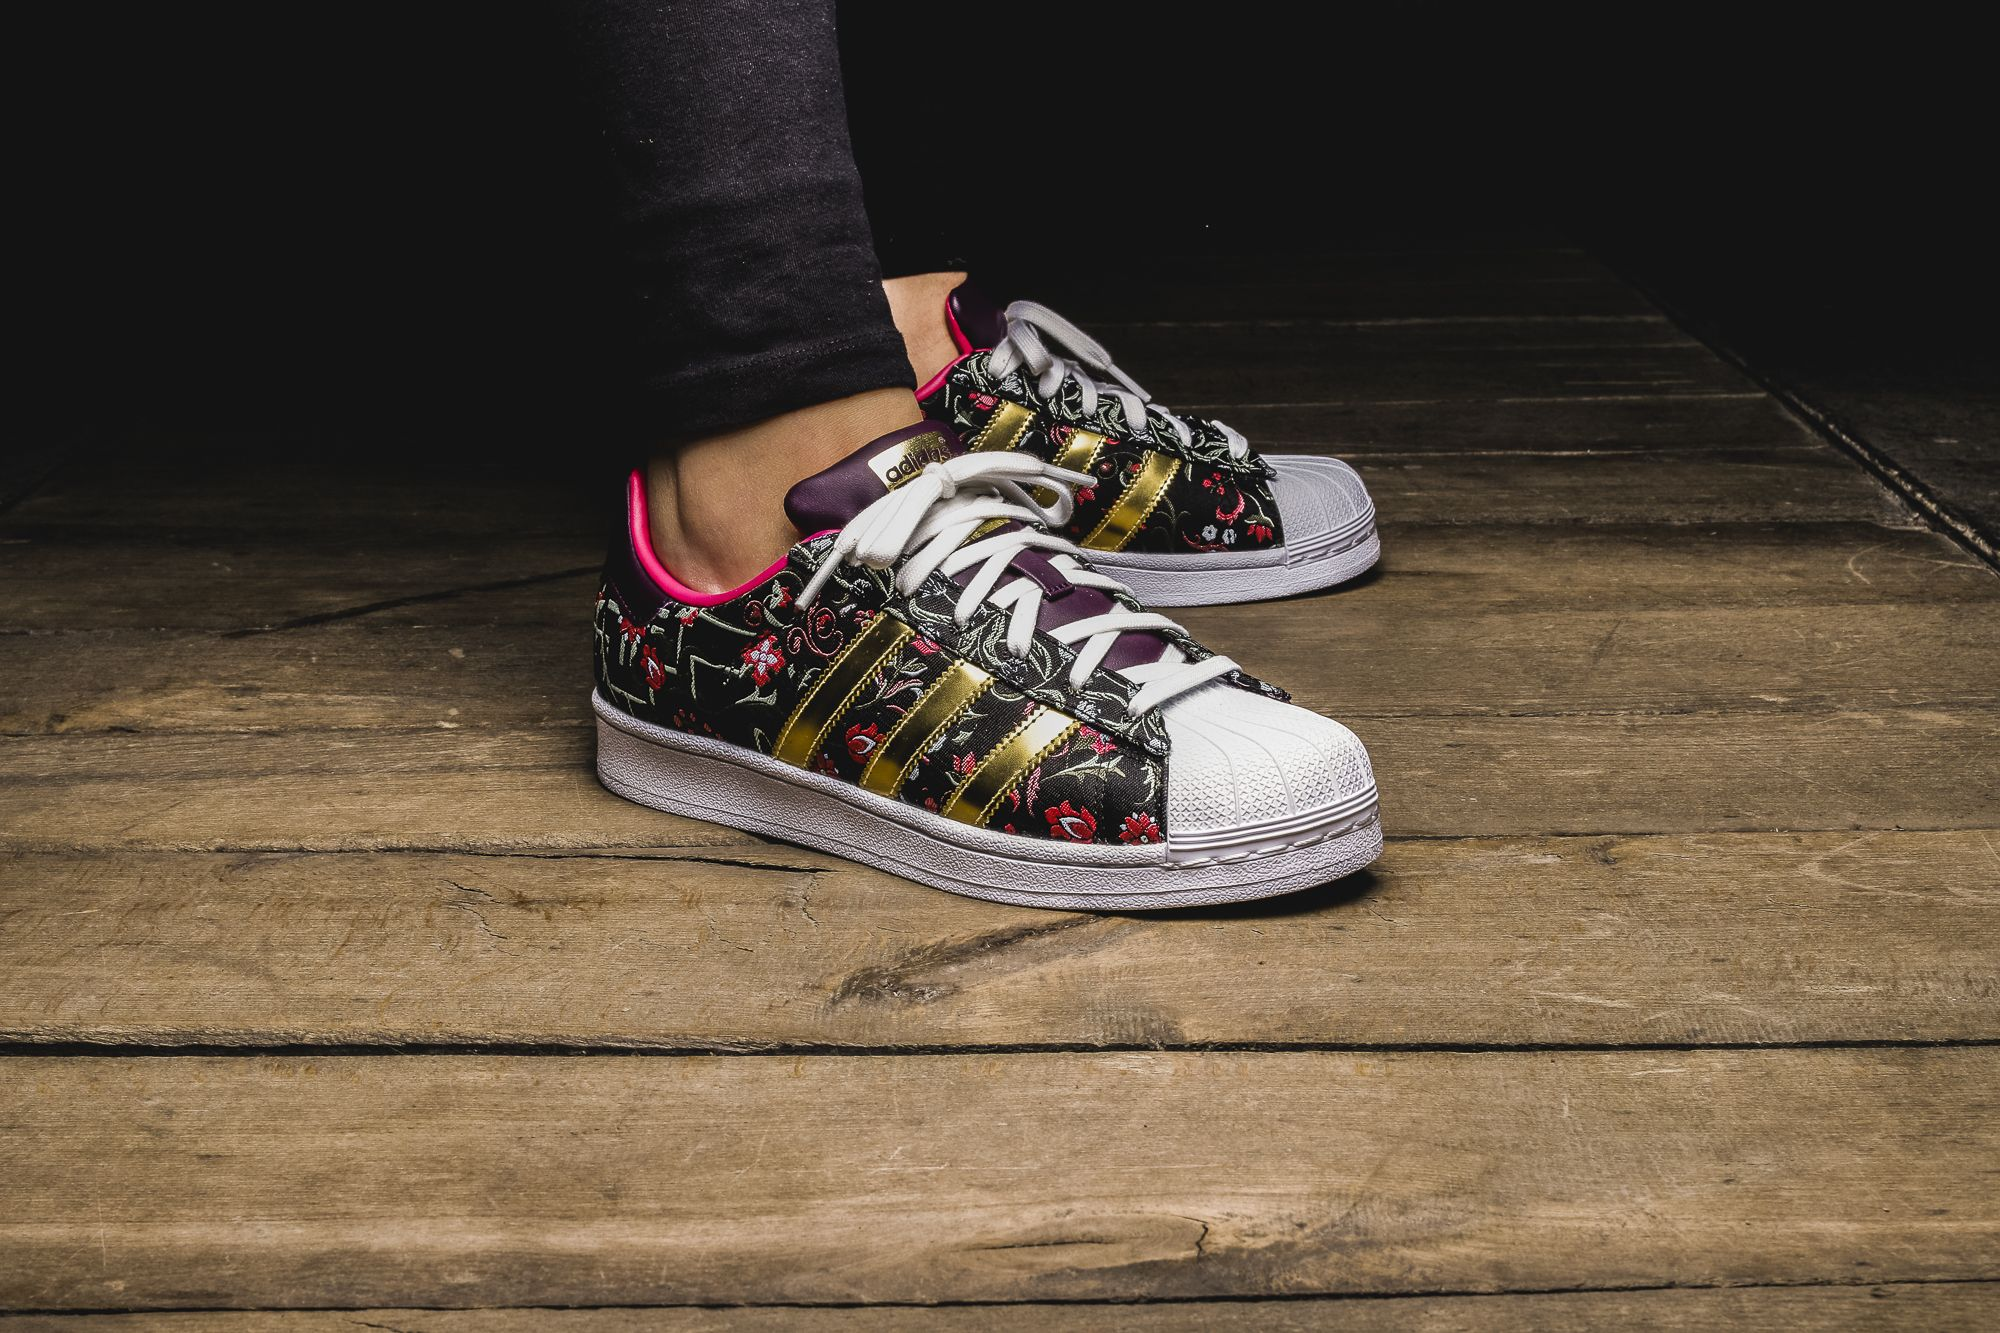 new products 142e4 f1e90 Girls, the adidas Originals Superstar W is available at our shop now! EU 37